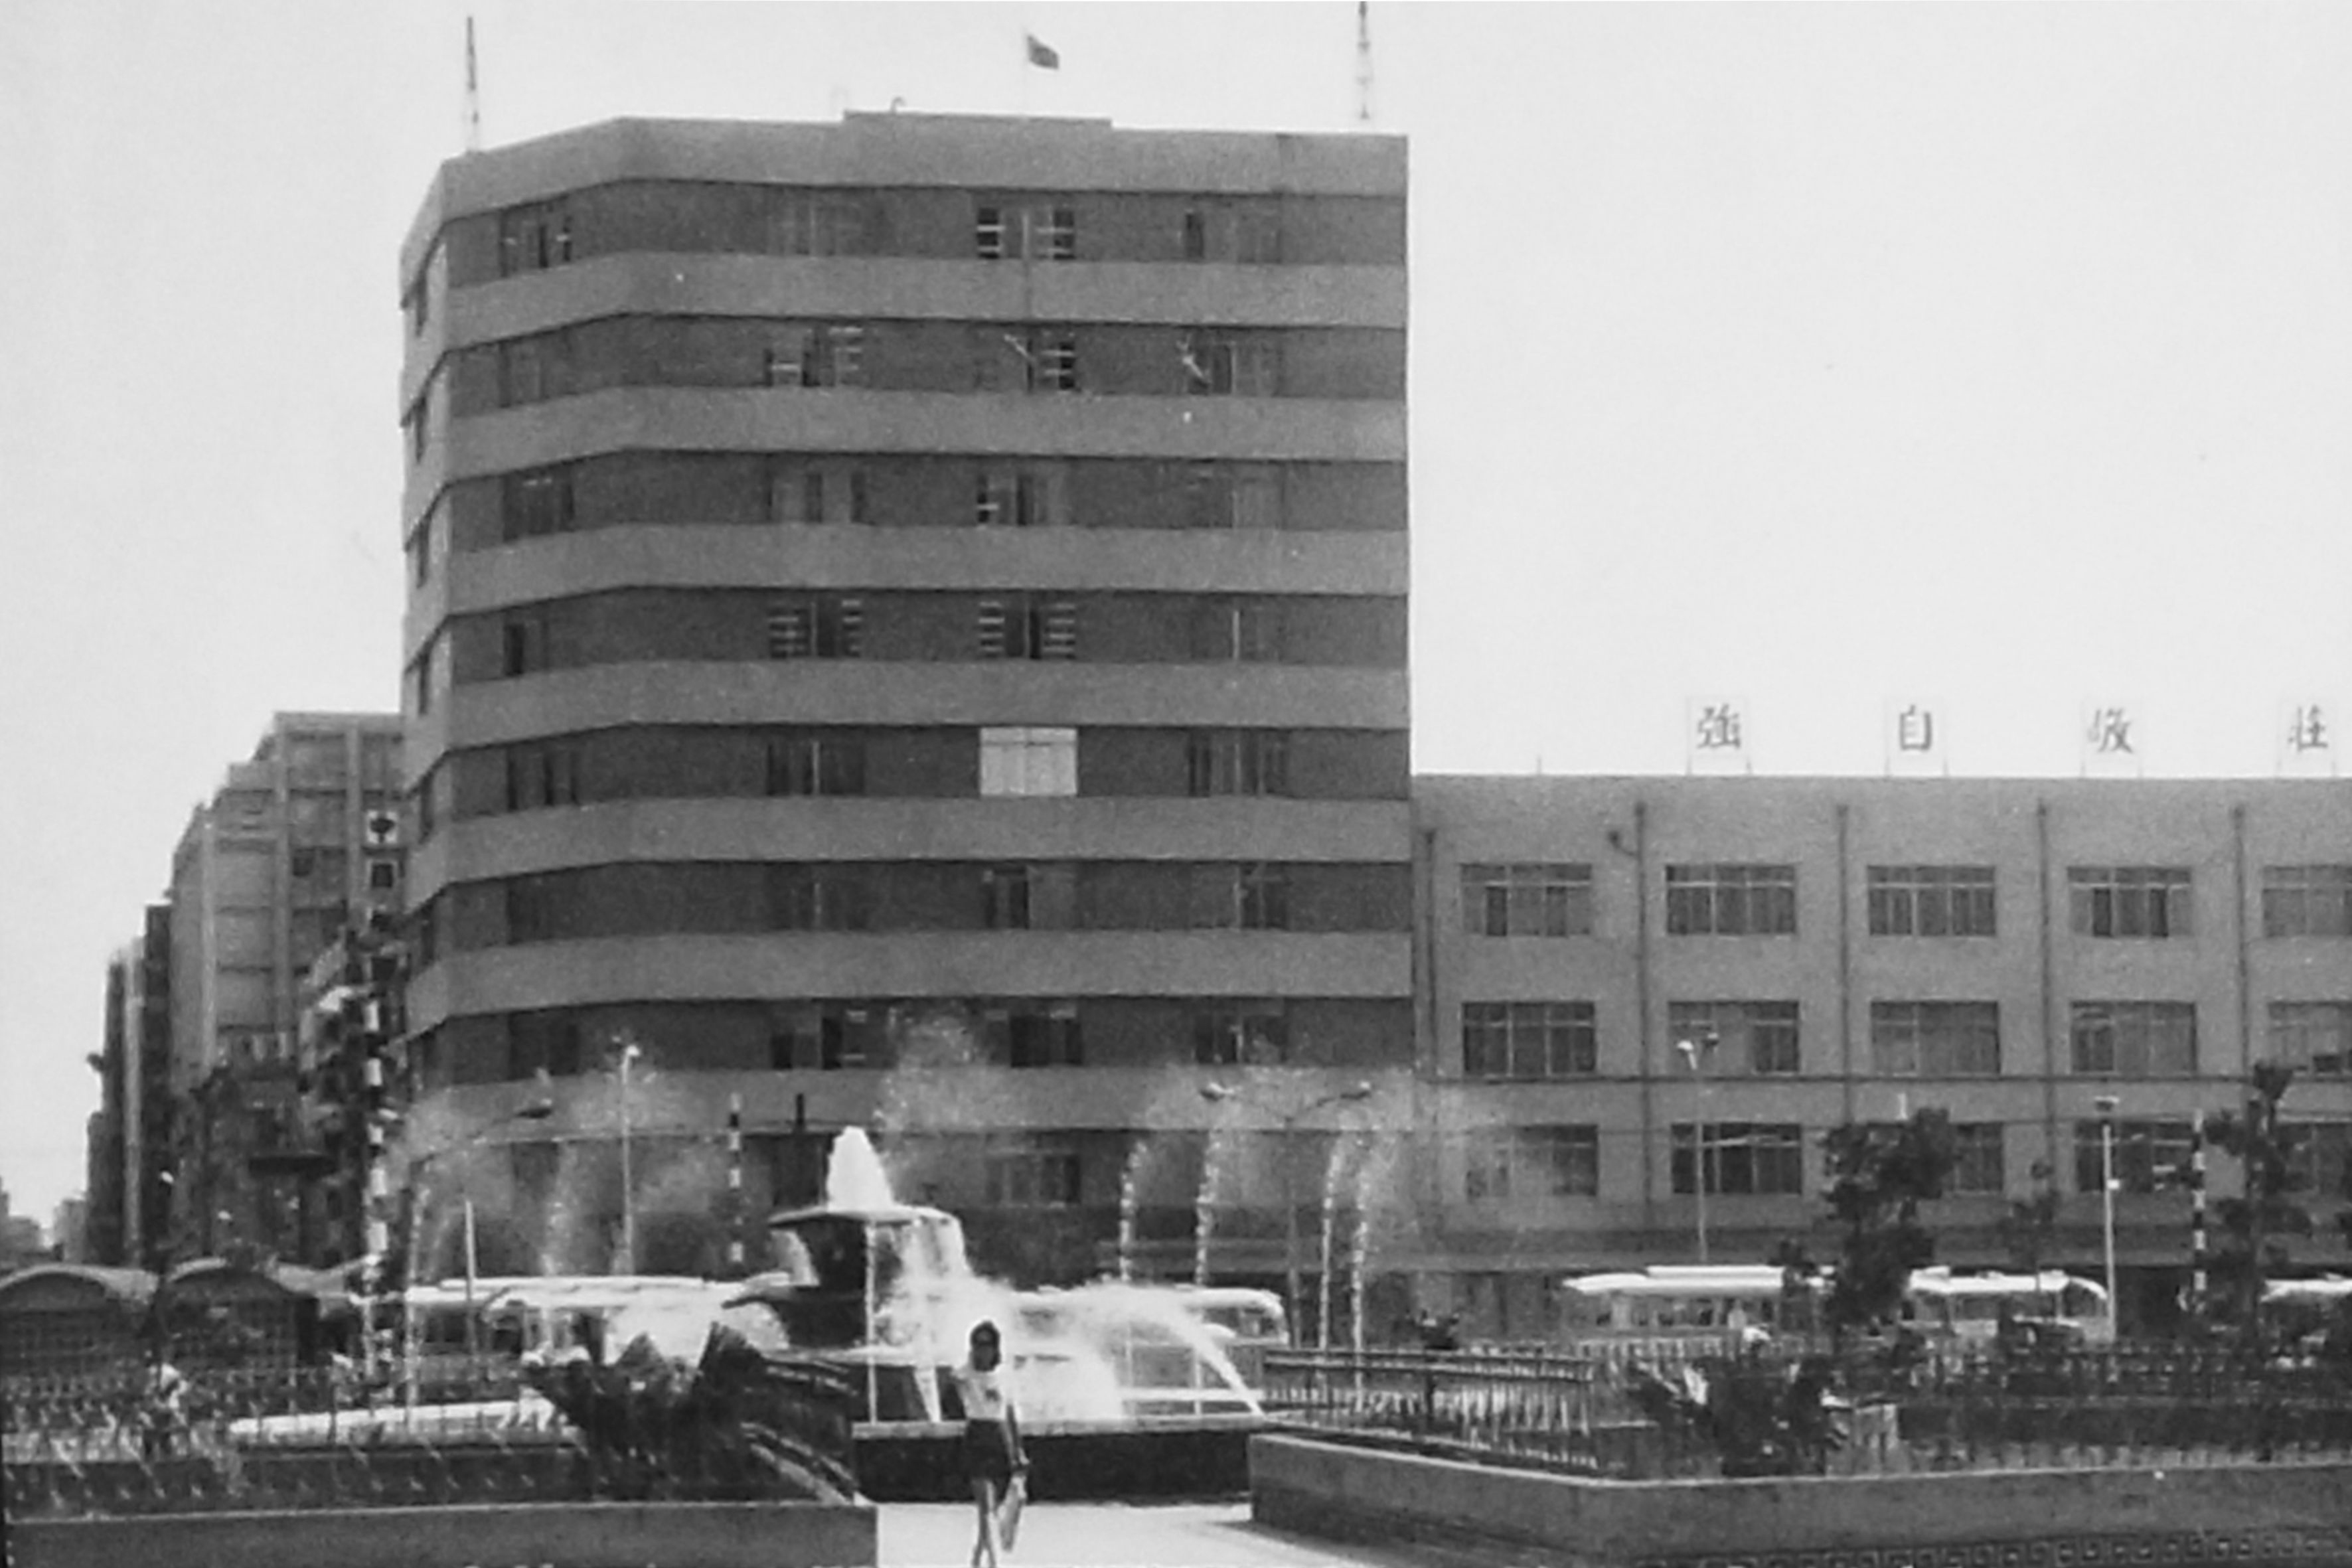 The Taiwan Navigation Company and the Taiwan Highway Bureau, Taiwan Provincial Government period (1946-2014) Image 3